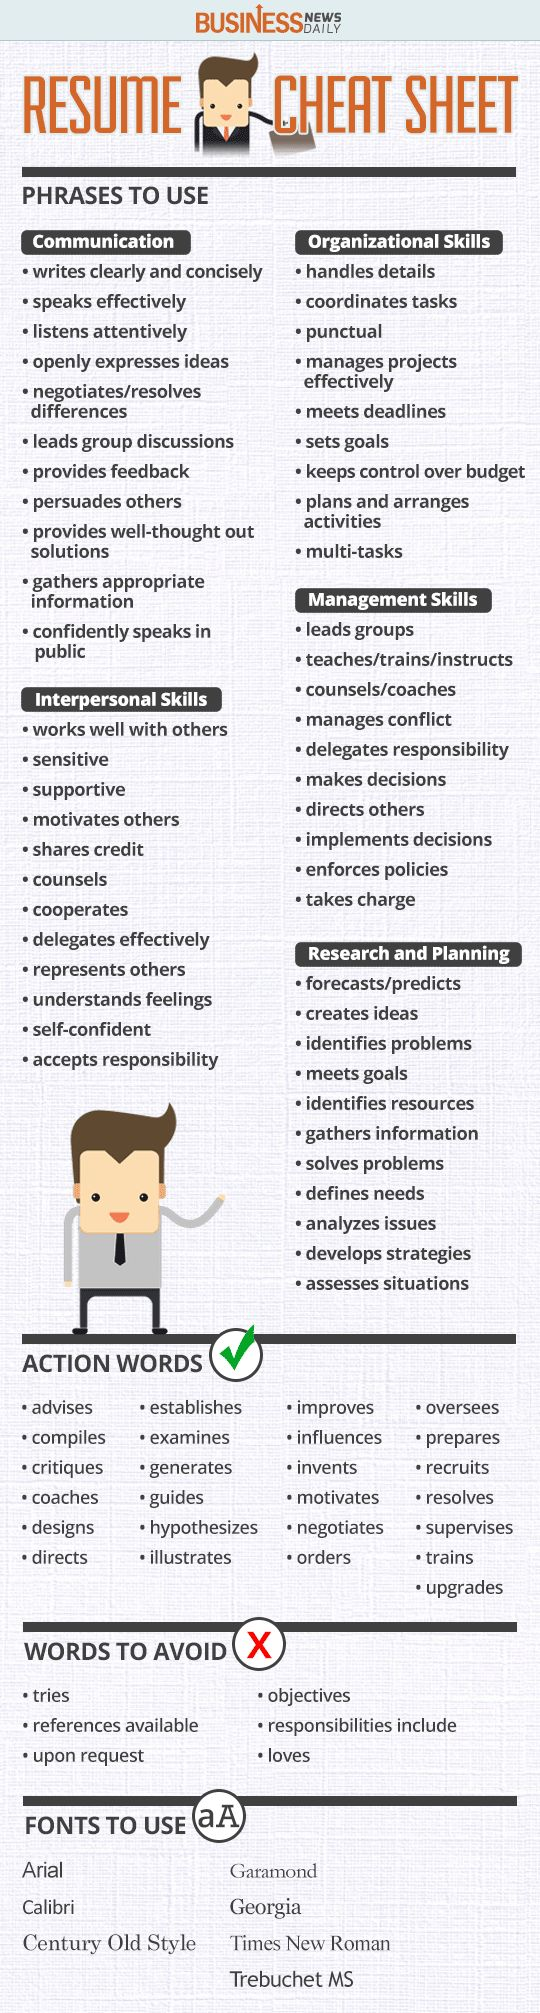 Opposenewapstandardsus  Terrific  Ideas About Resume On Pinterest  Cv Format Resume Cv And  With Excellent Resume Cheat Sheet Infographic Andrews Almost Done With A Complete Unit On Employment Which With Cute Resume For Substitute Teacher Also Resume Experience Example In Addition Mac Resume Templates And Where Can I Post My Resume As Well As Resume Making Additionally Business Intelligence Resume From Pinterestcom With Opposenewapstandardsus  Excellent  Ideas About Resume On Pinterest  Cv Format Resume Cv And  With Cute Resume Cheat Sheet Infographic Andrews Almost Done With A Complete Unit On Employment Which And Terrific Resume For Substitute Teacher Also Resume Experience Example In Addition Mac Resume Templates From Pinterestcom